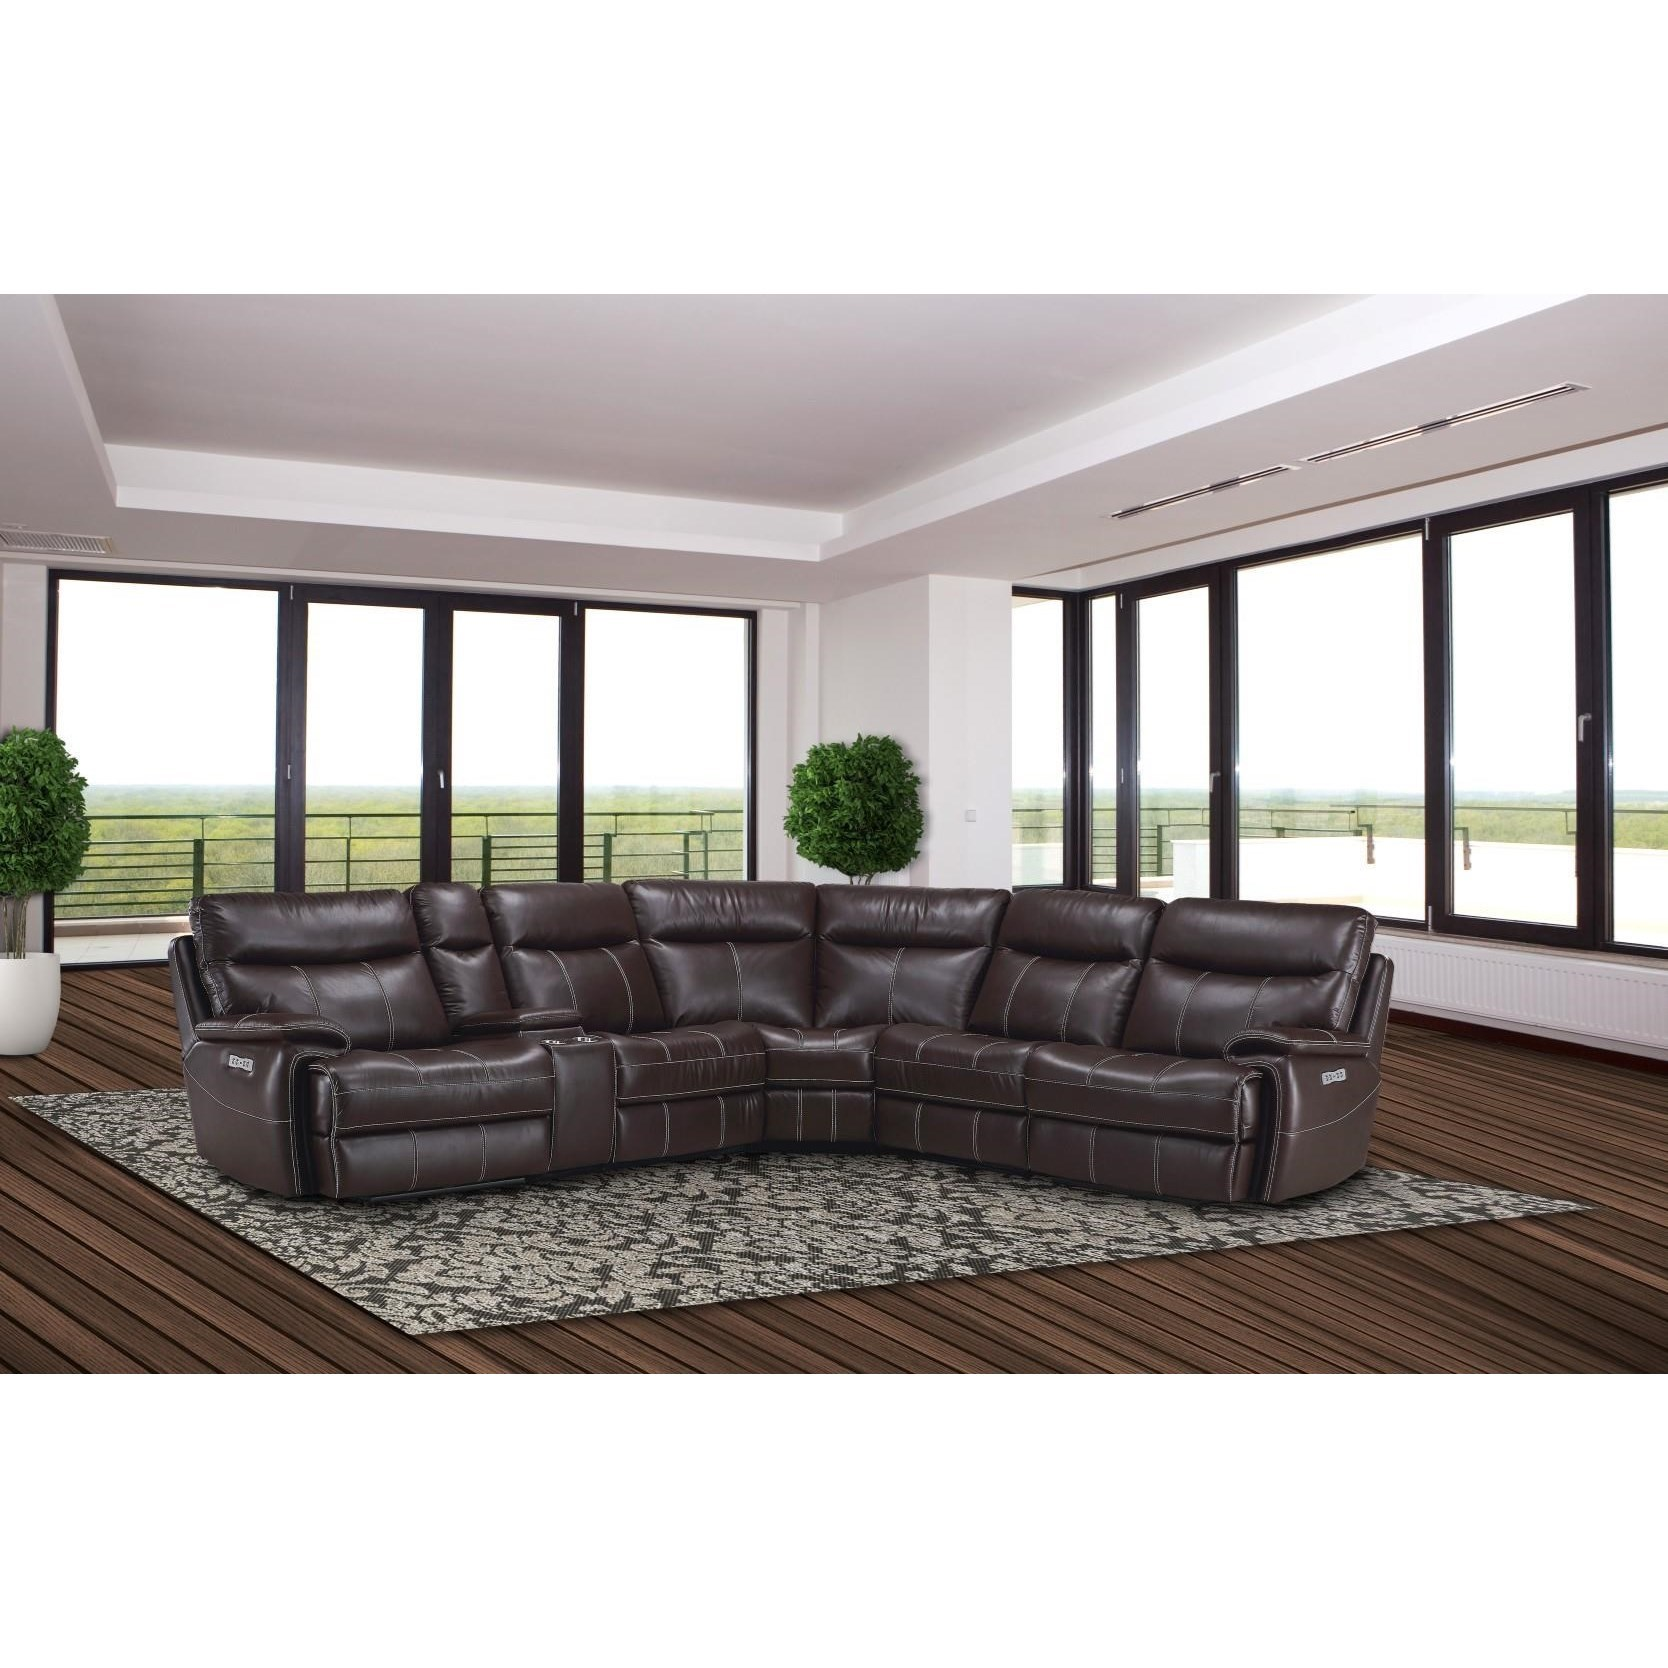 Parker Living DylanReclining Sectional Sofa